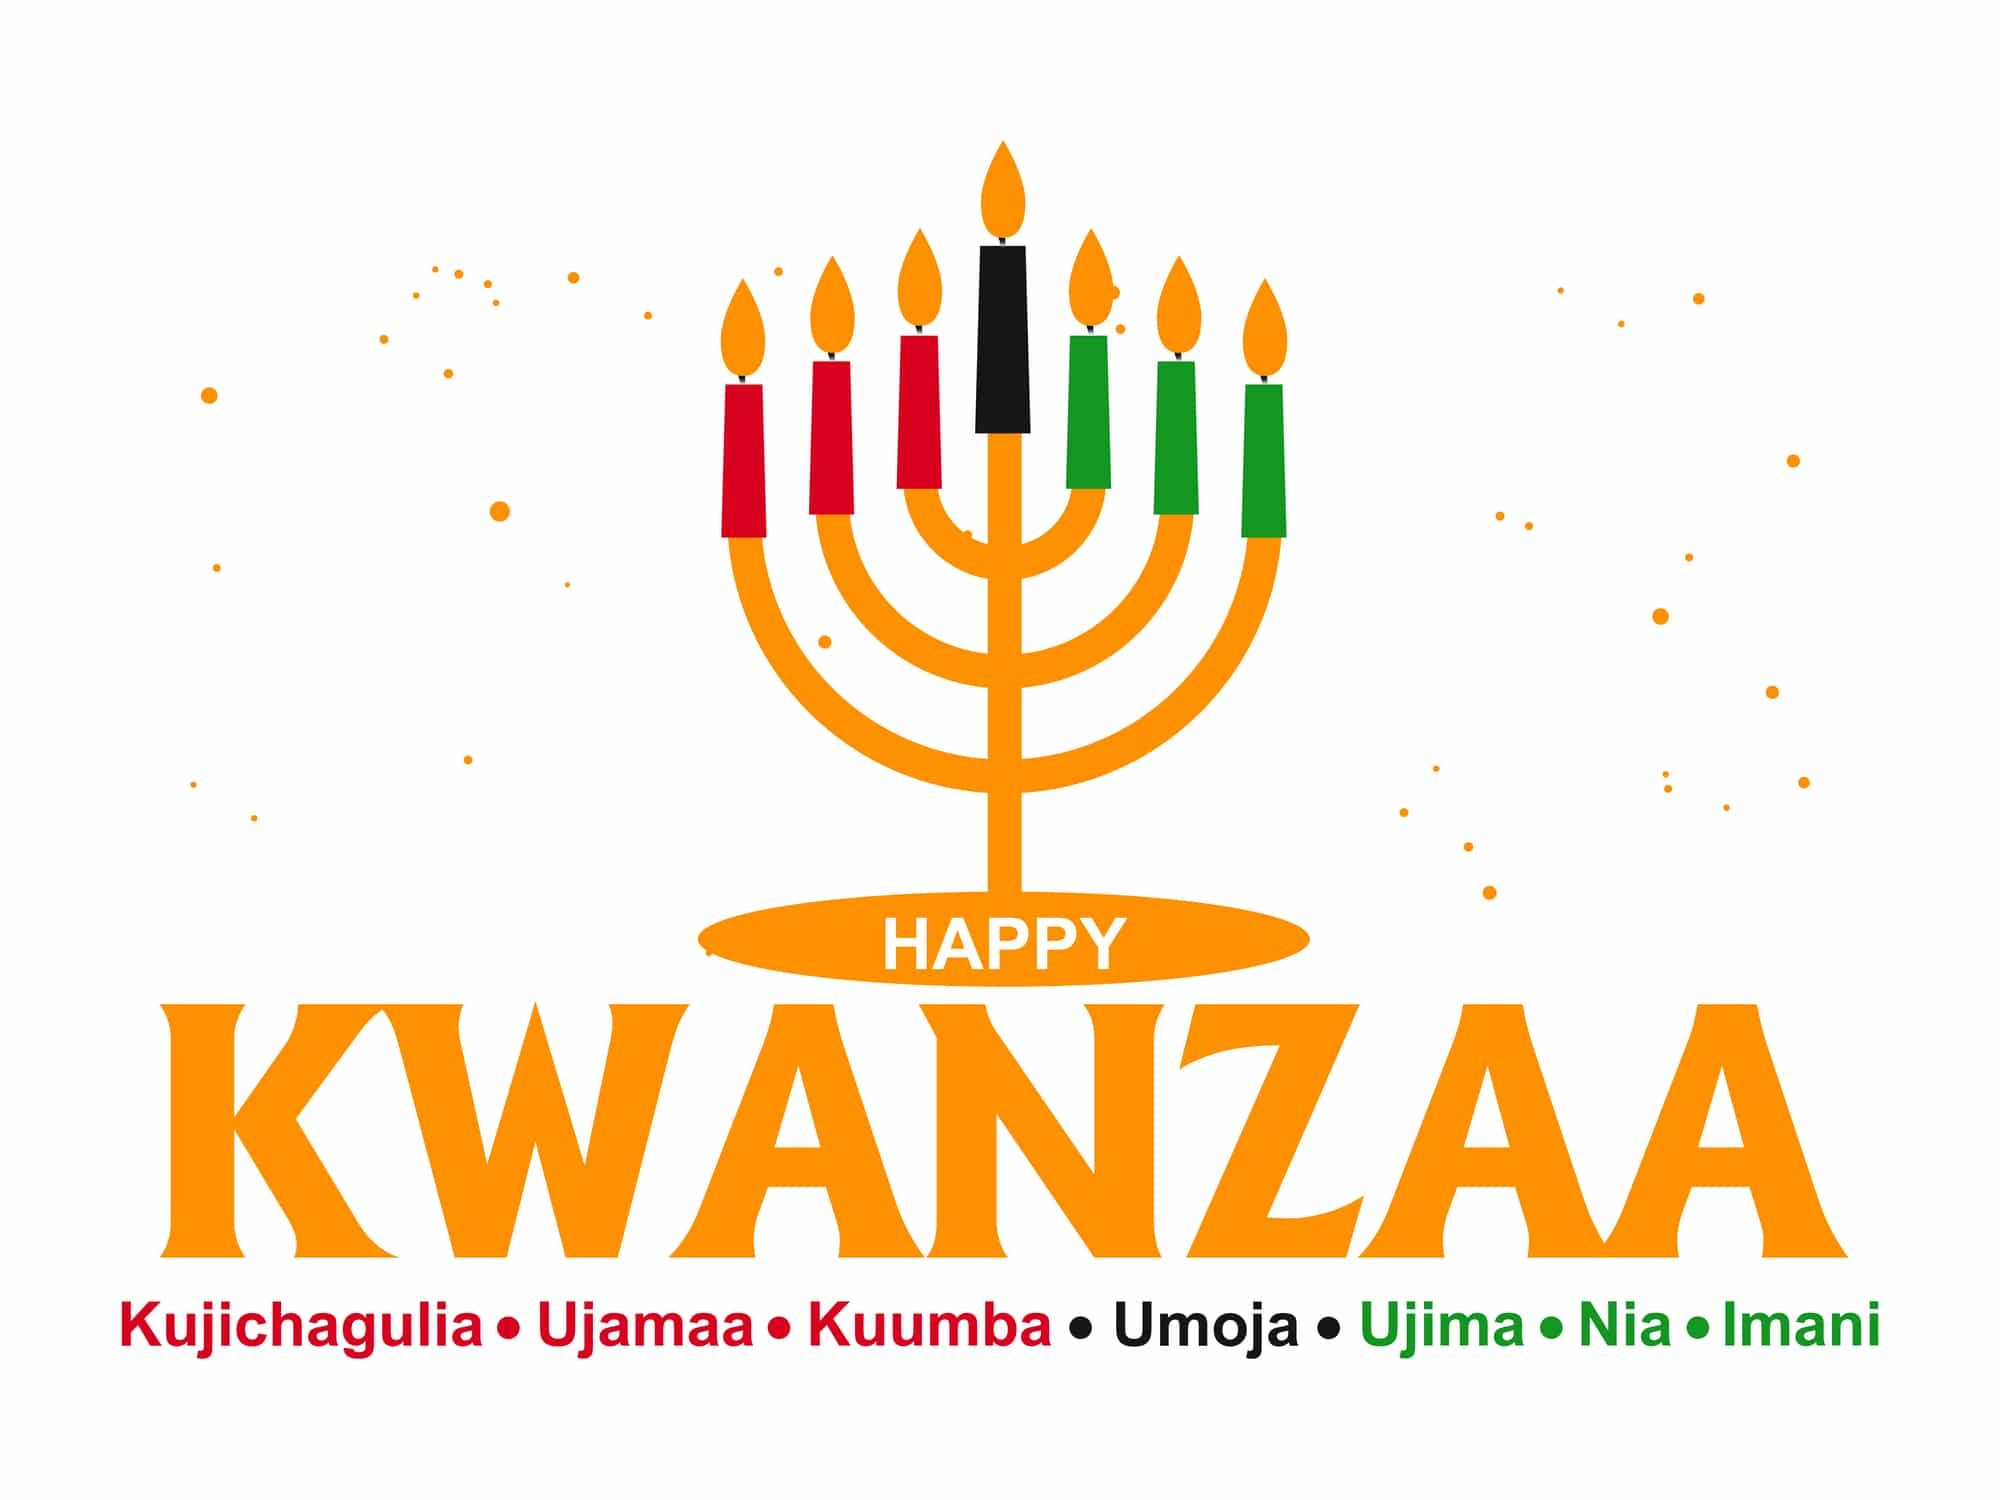 The word Kwanzaa with candles in the background